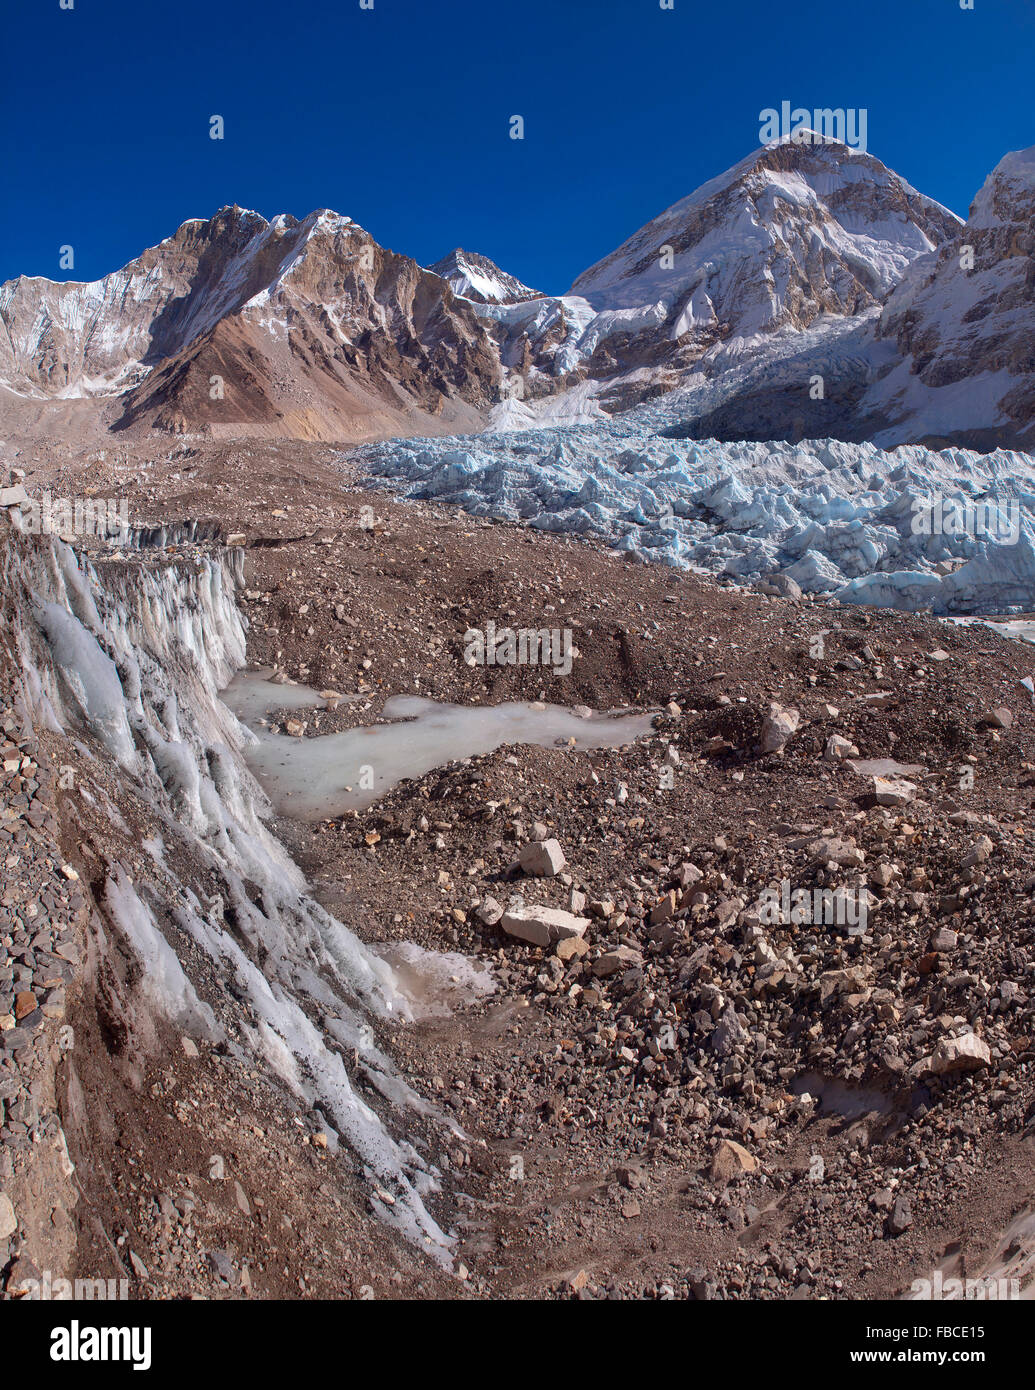 Everest base camp glacier - Stock Image